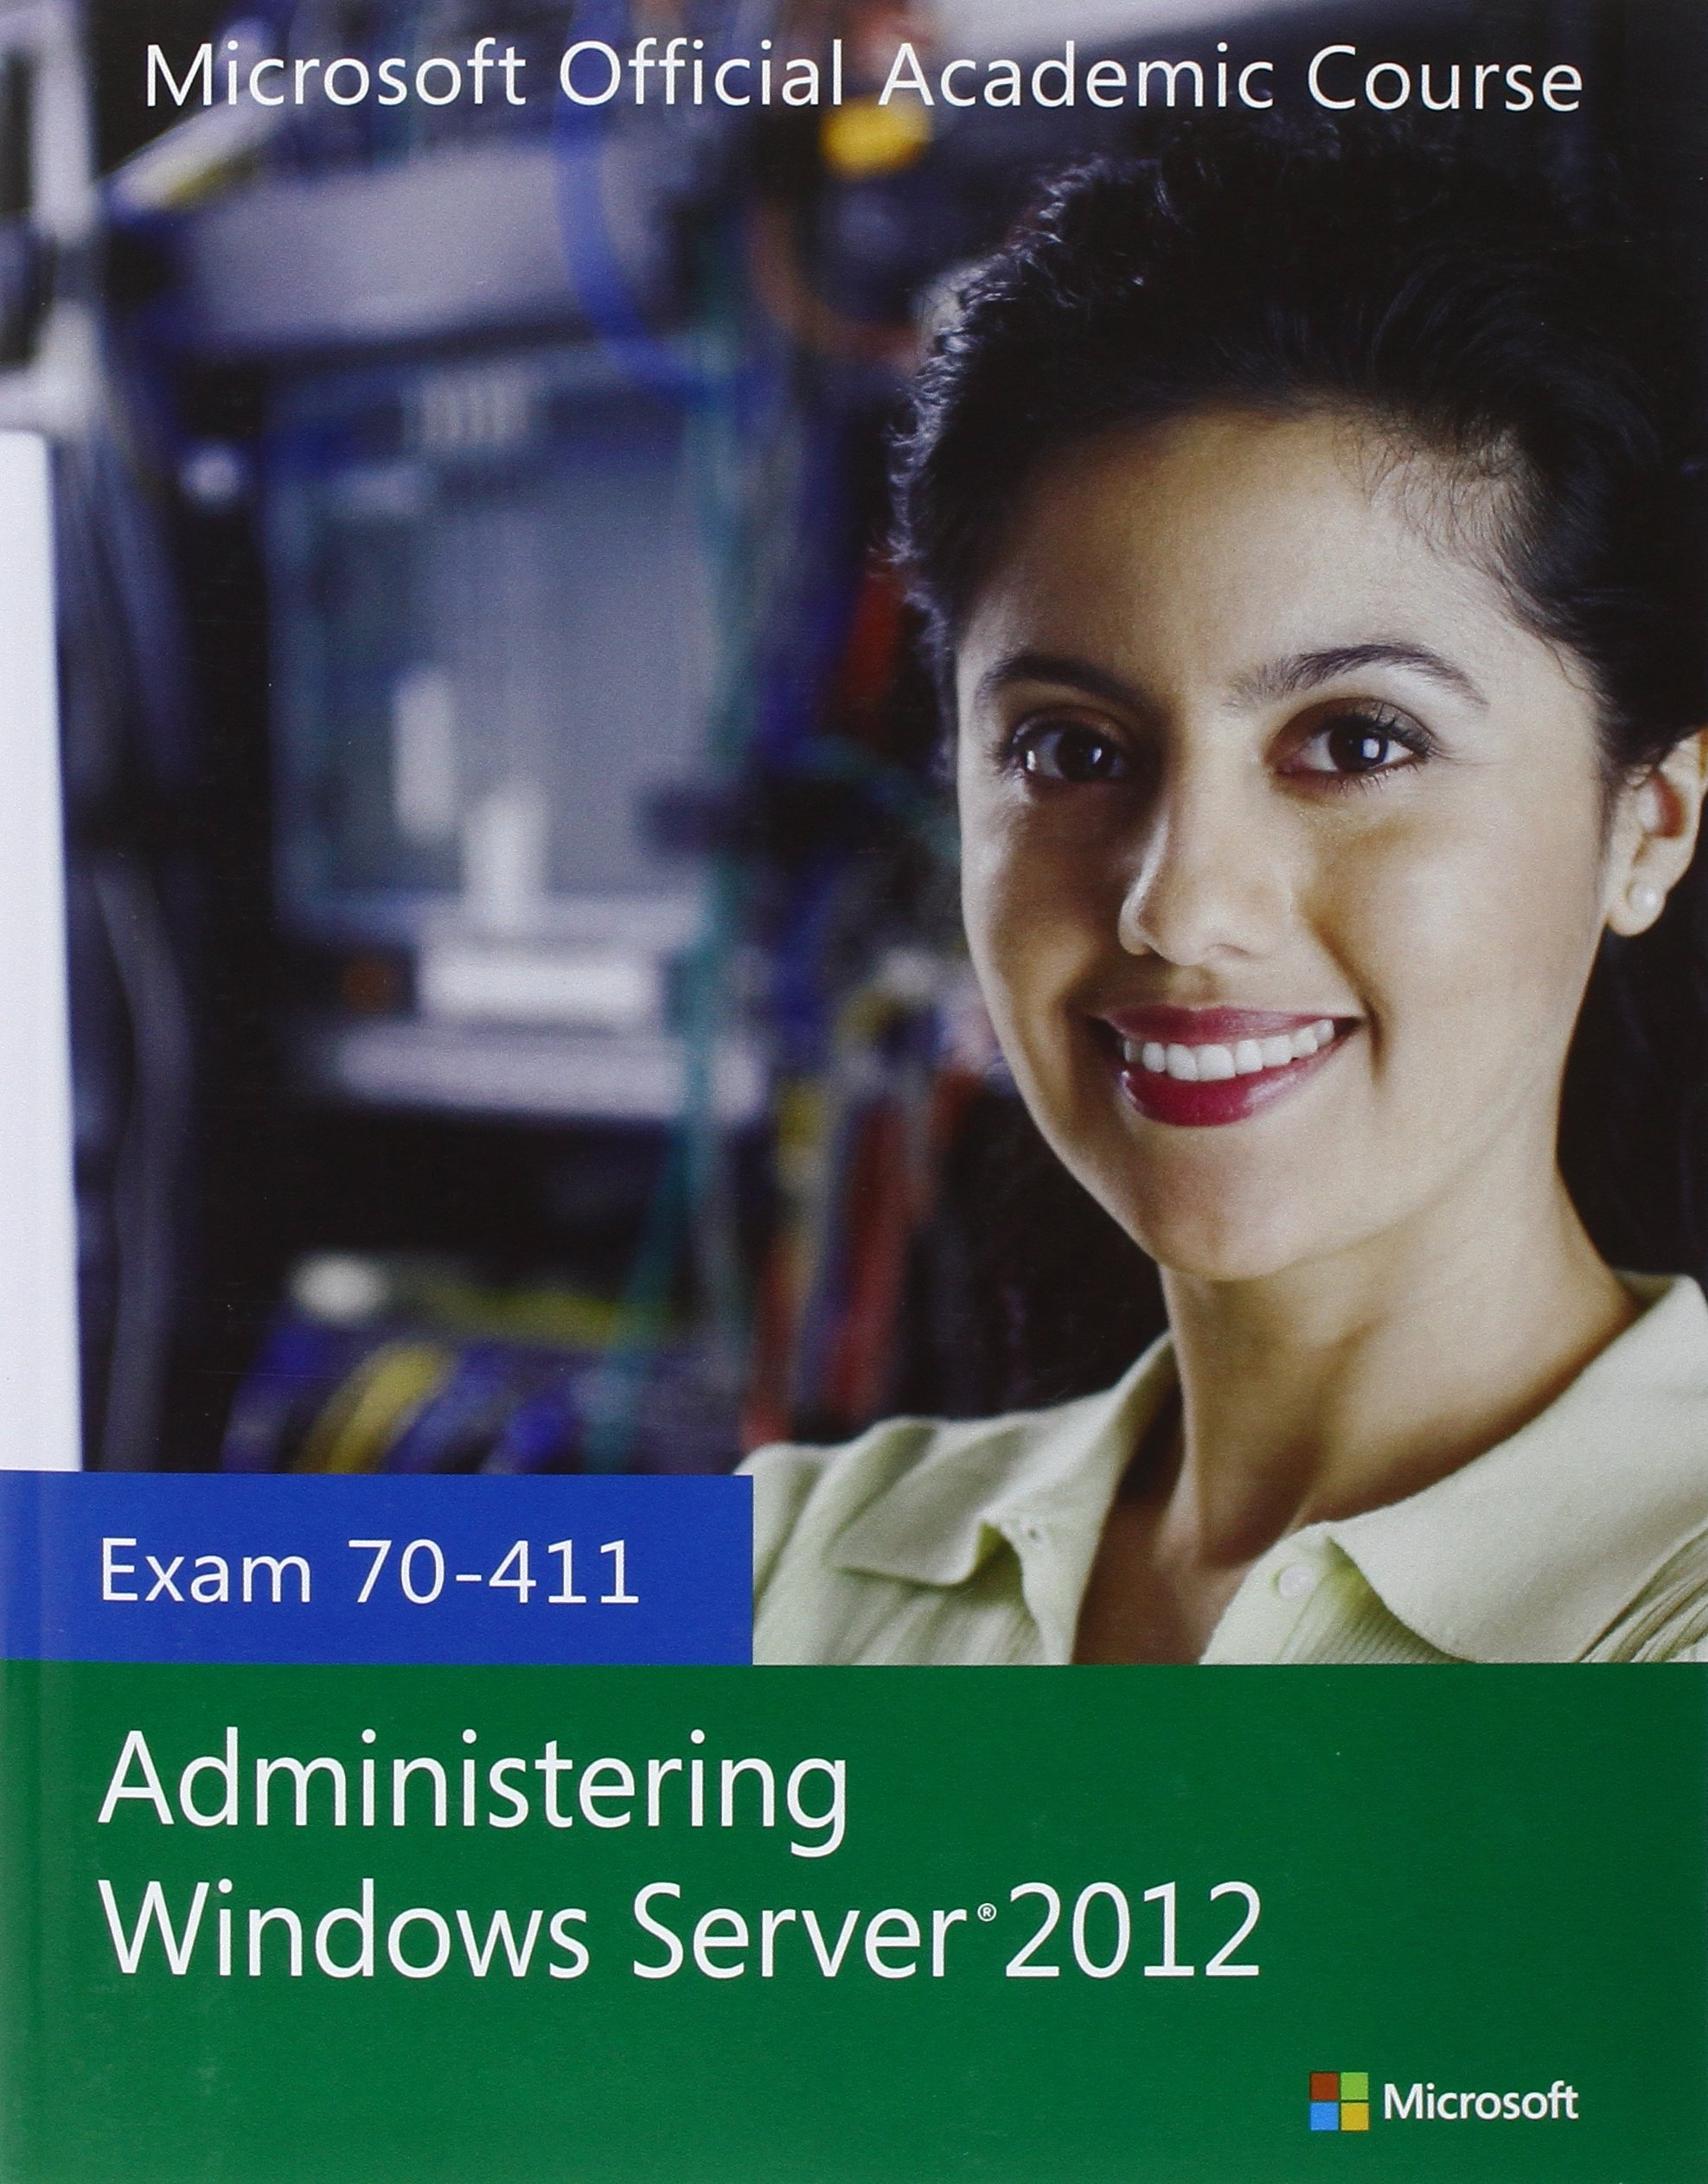 Buy Exam 70-411 Administering Windows Server 2012 (Microsoft Official  Academic Course Series) Book Online at Low Prices in India | Exam 70-411  Administering ...